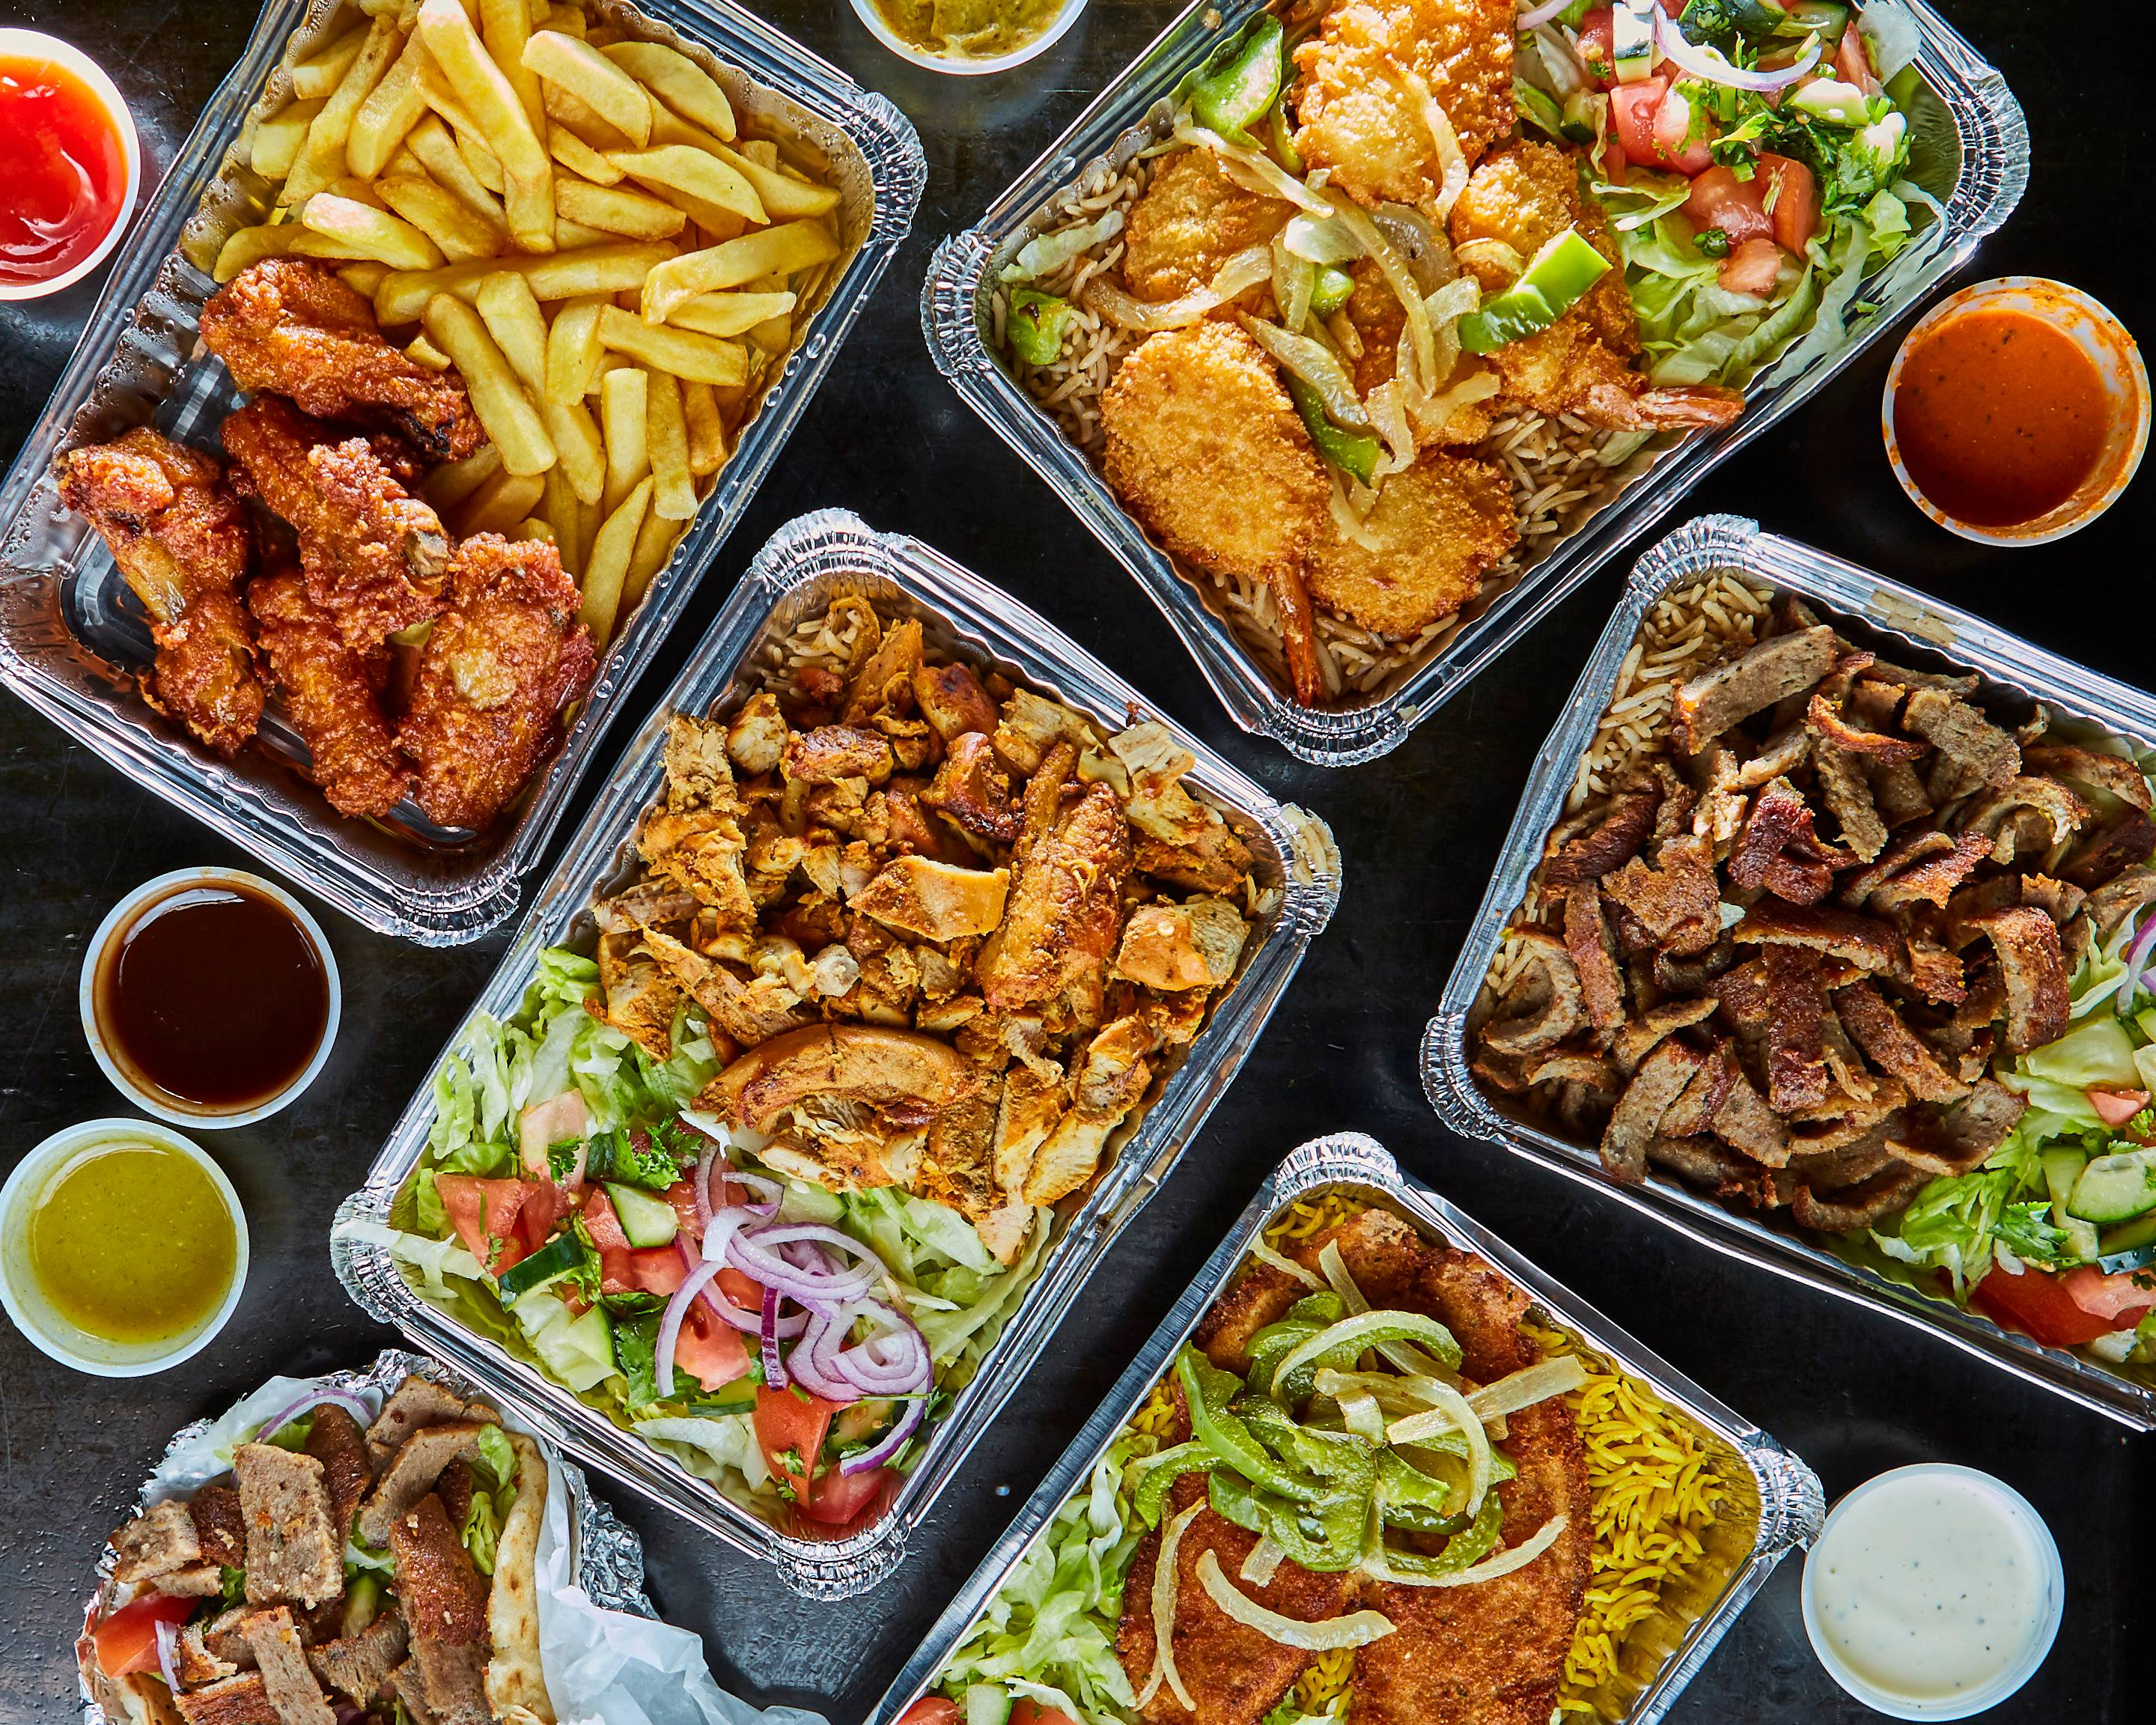 Order Fast Buy Halal Food Delivery Online New York City Menu Prices Uber Eats